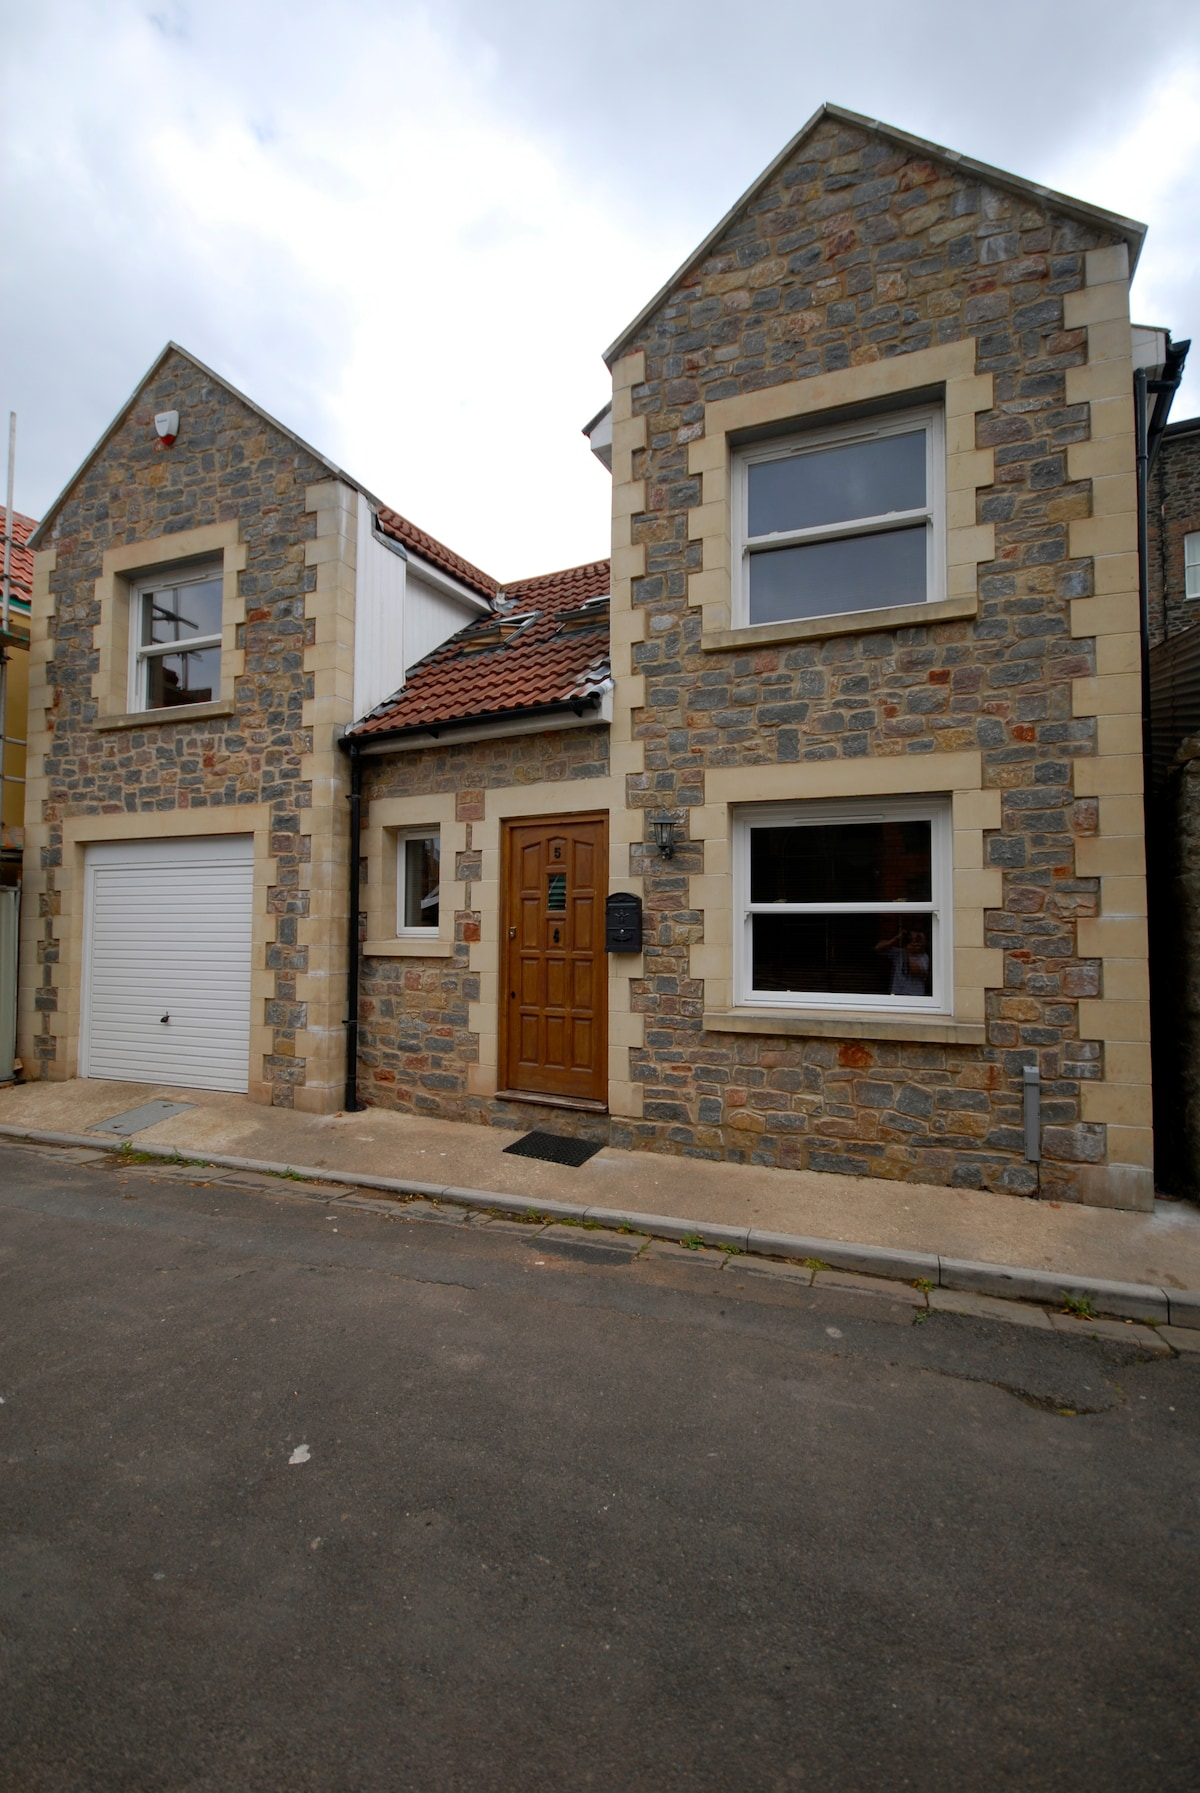 The front of the house, which can be found on a secluded lane in colourful Totterdown, Bristol